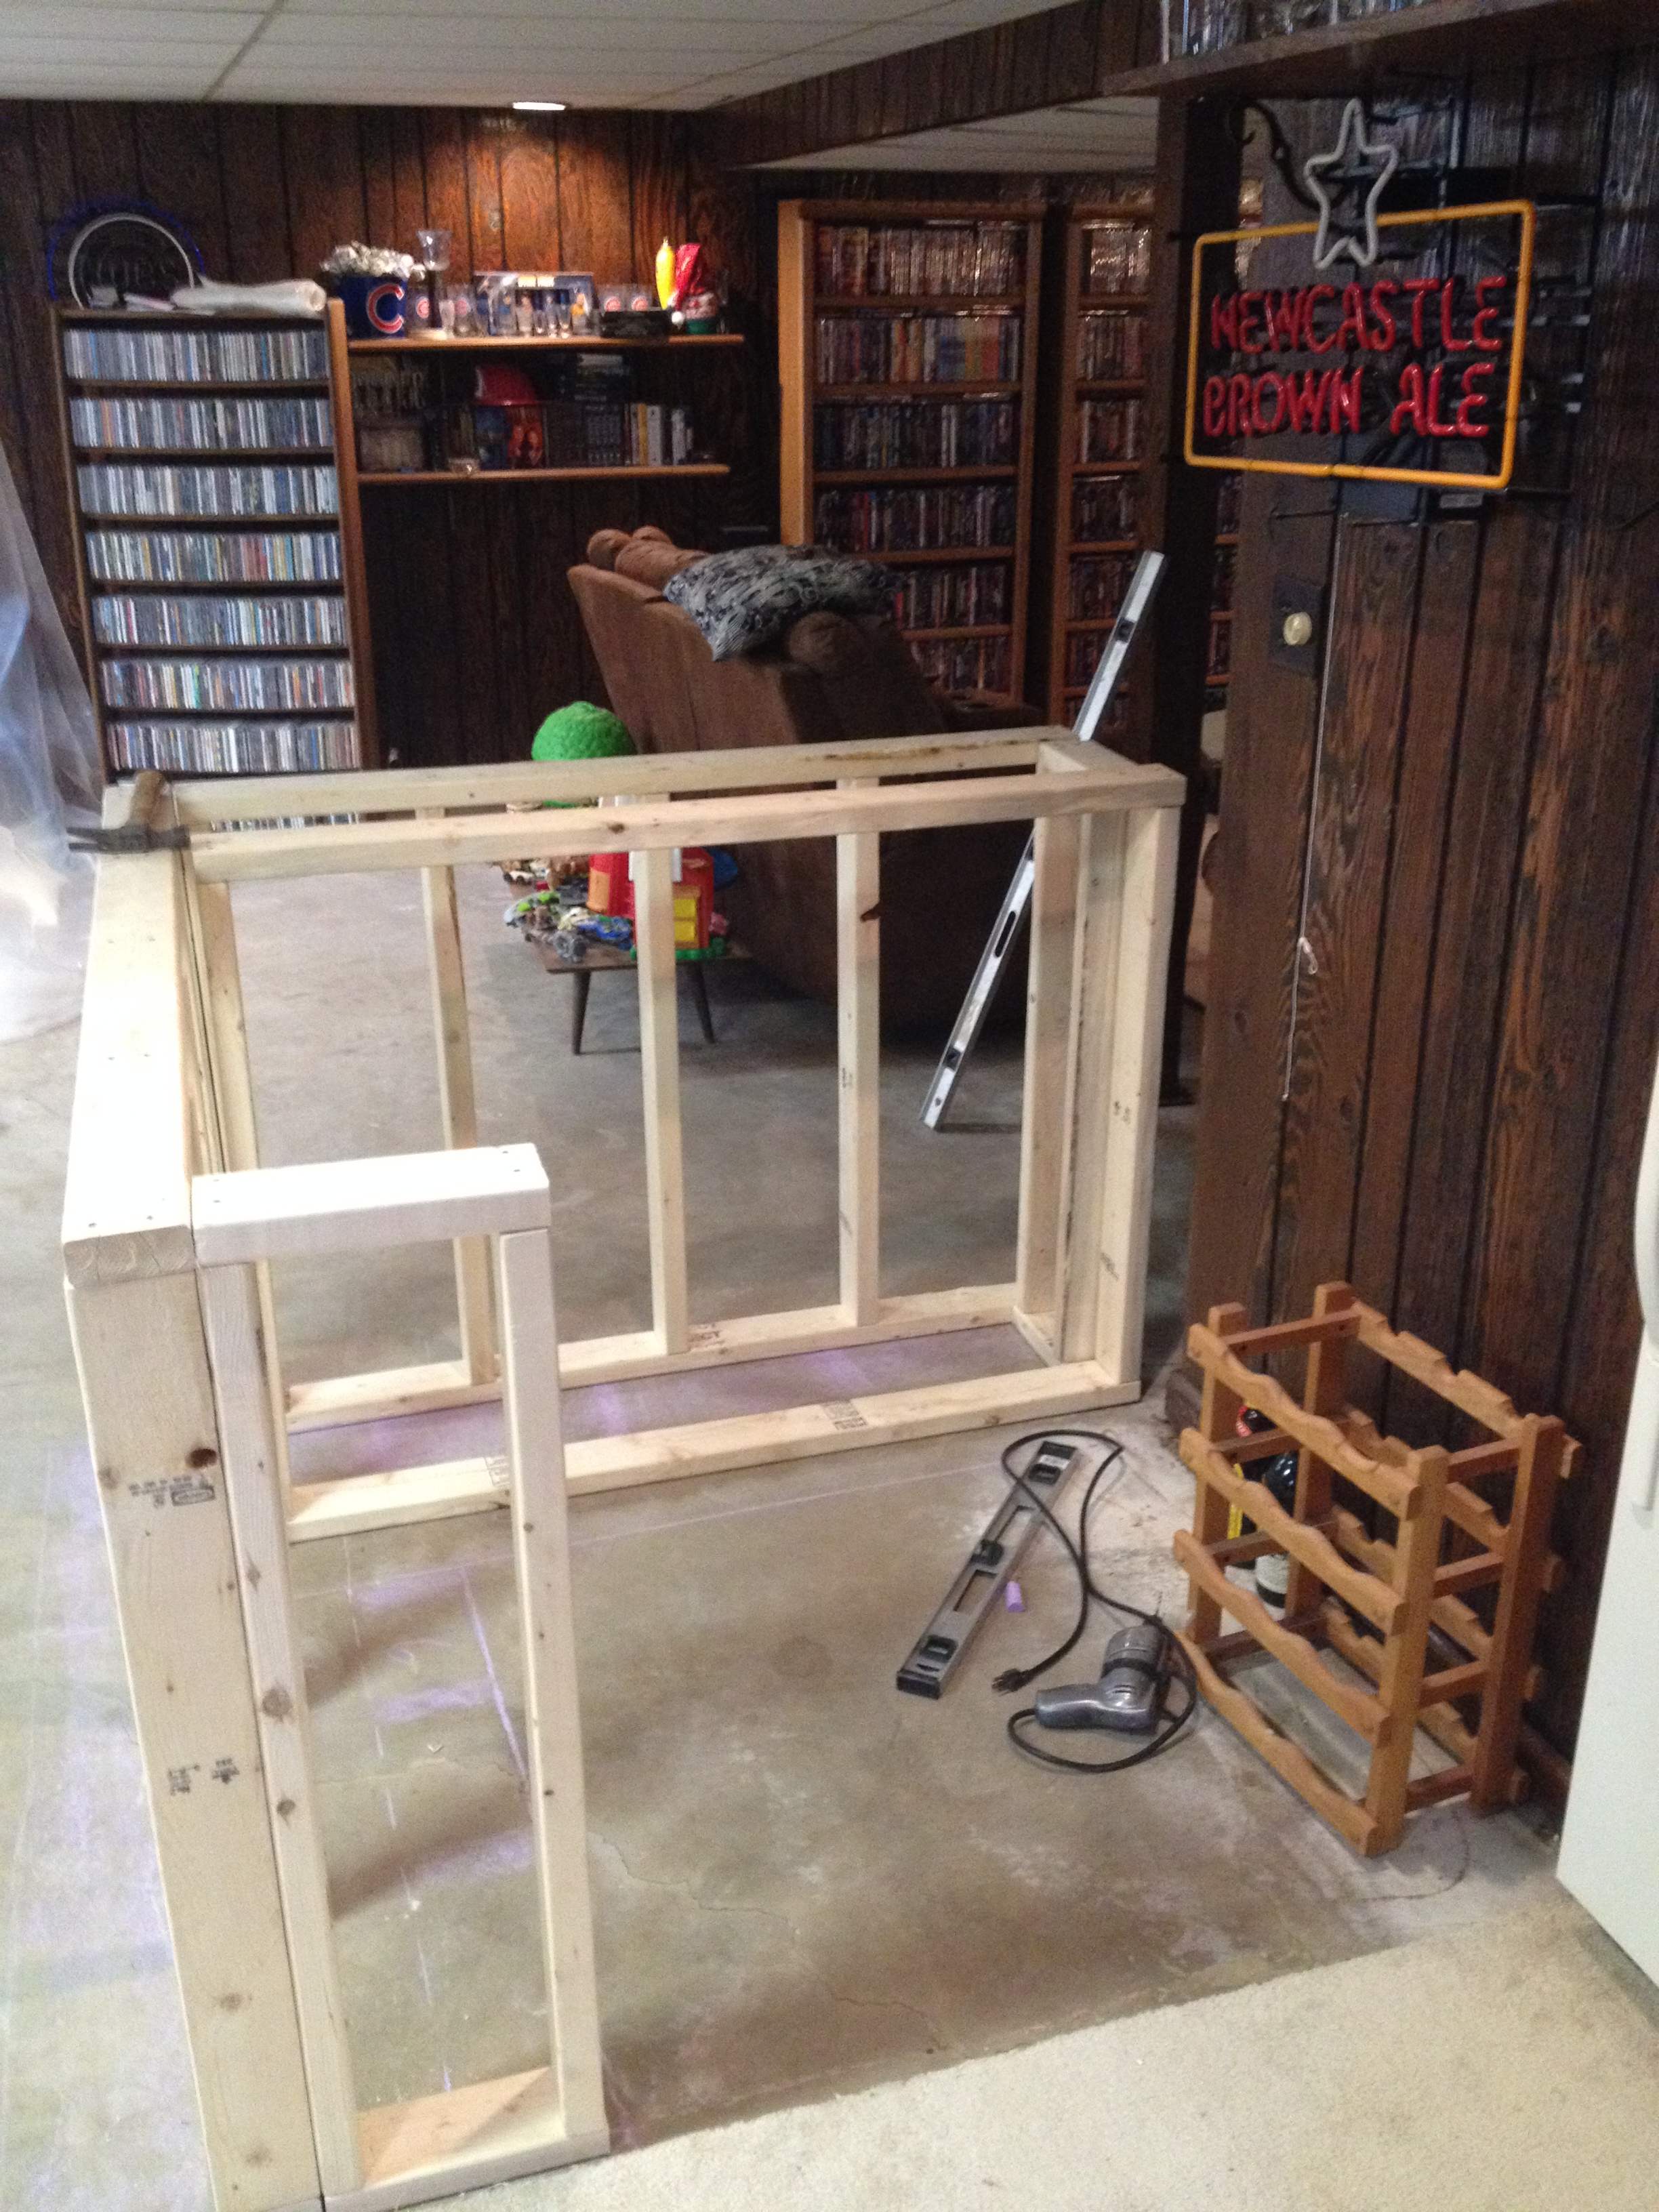 John everson dark arts blog archive diy how to for How to build a wall bar